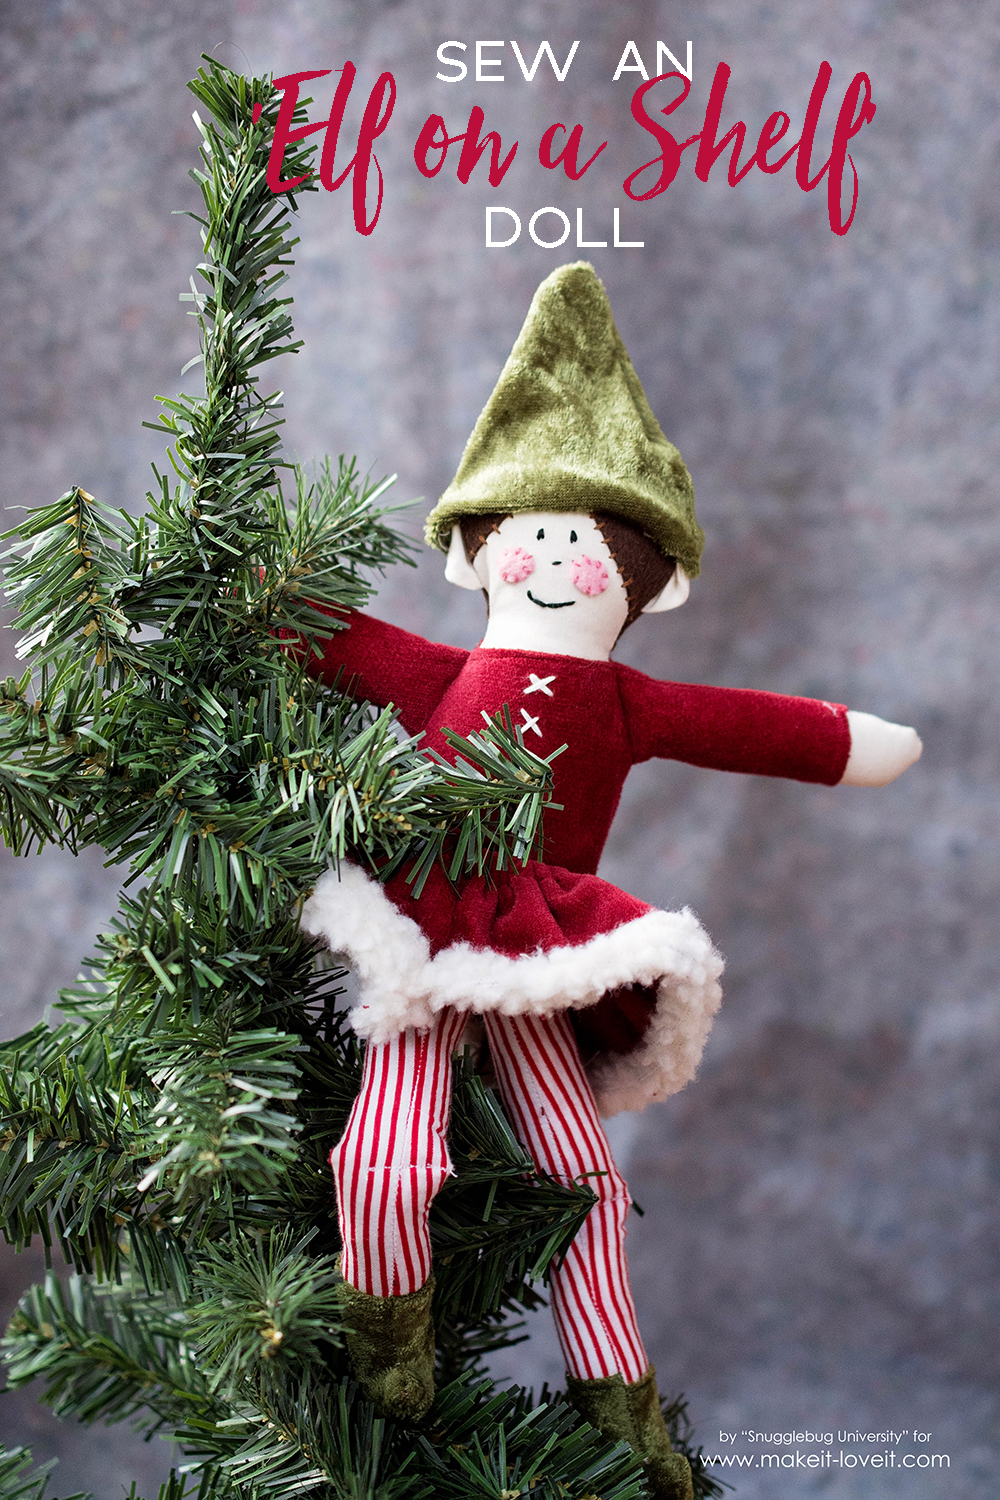 Sew an Elf On the Shelf Doll